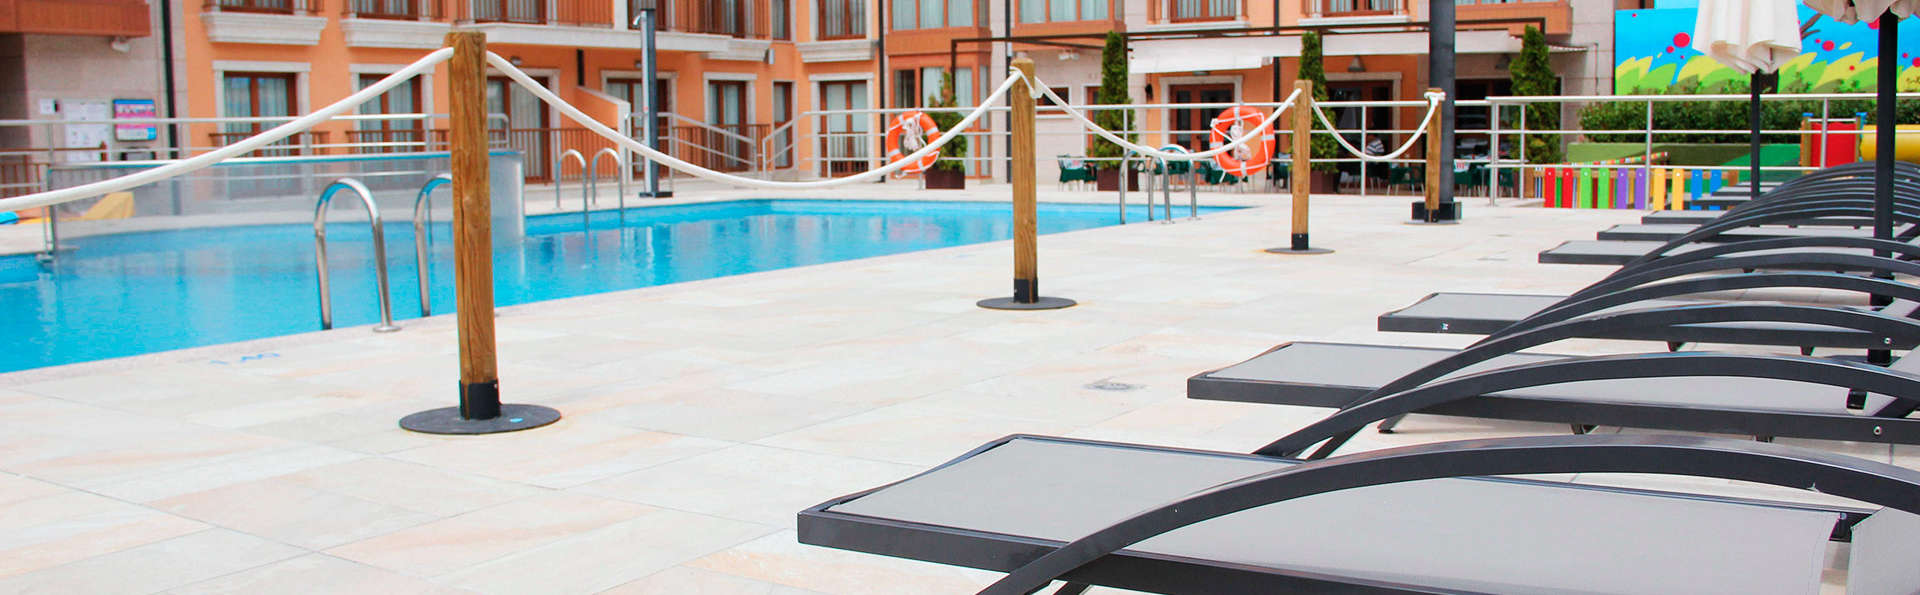 Apartahotel - Spa Jacetania - EDIT_pool.jpg